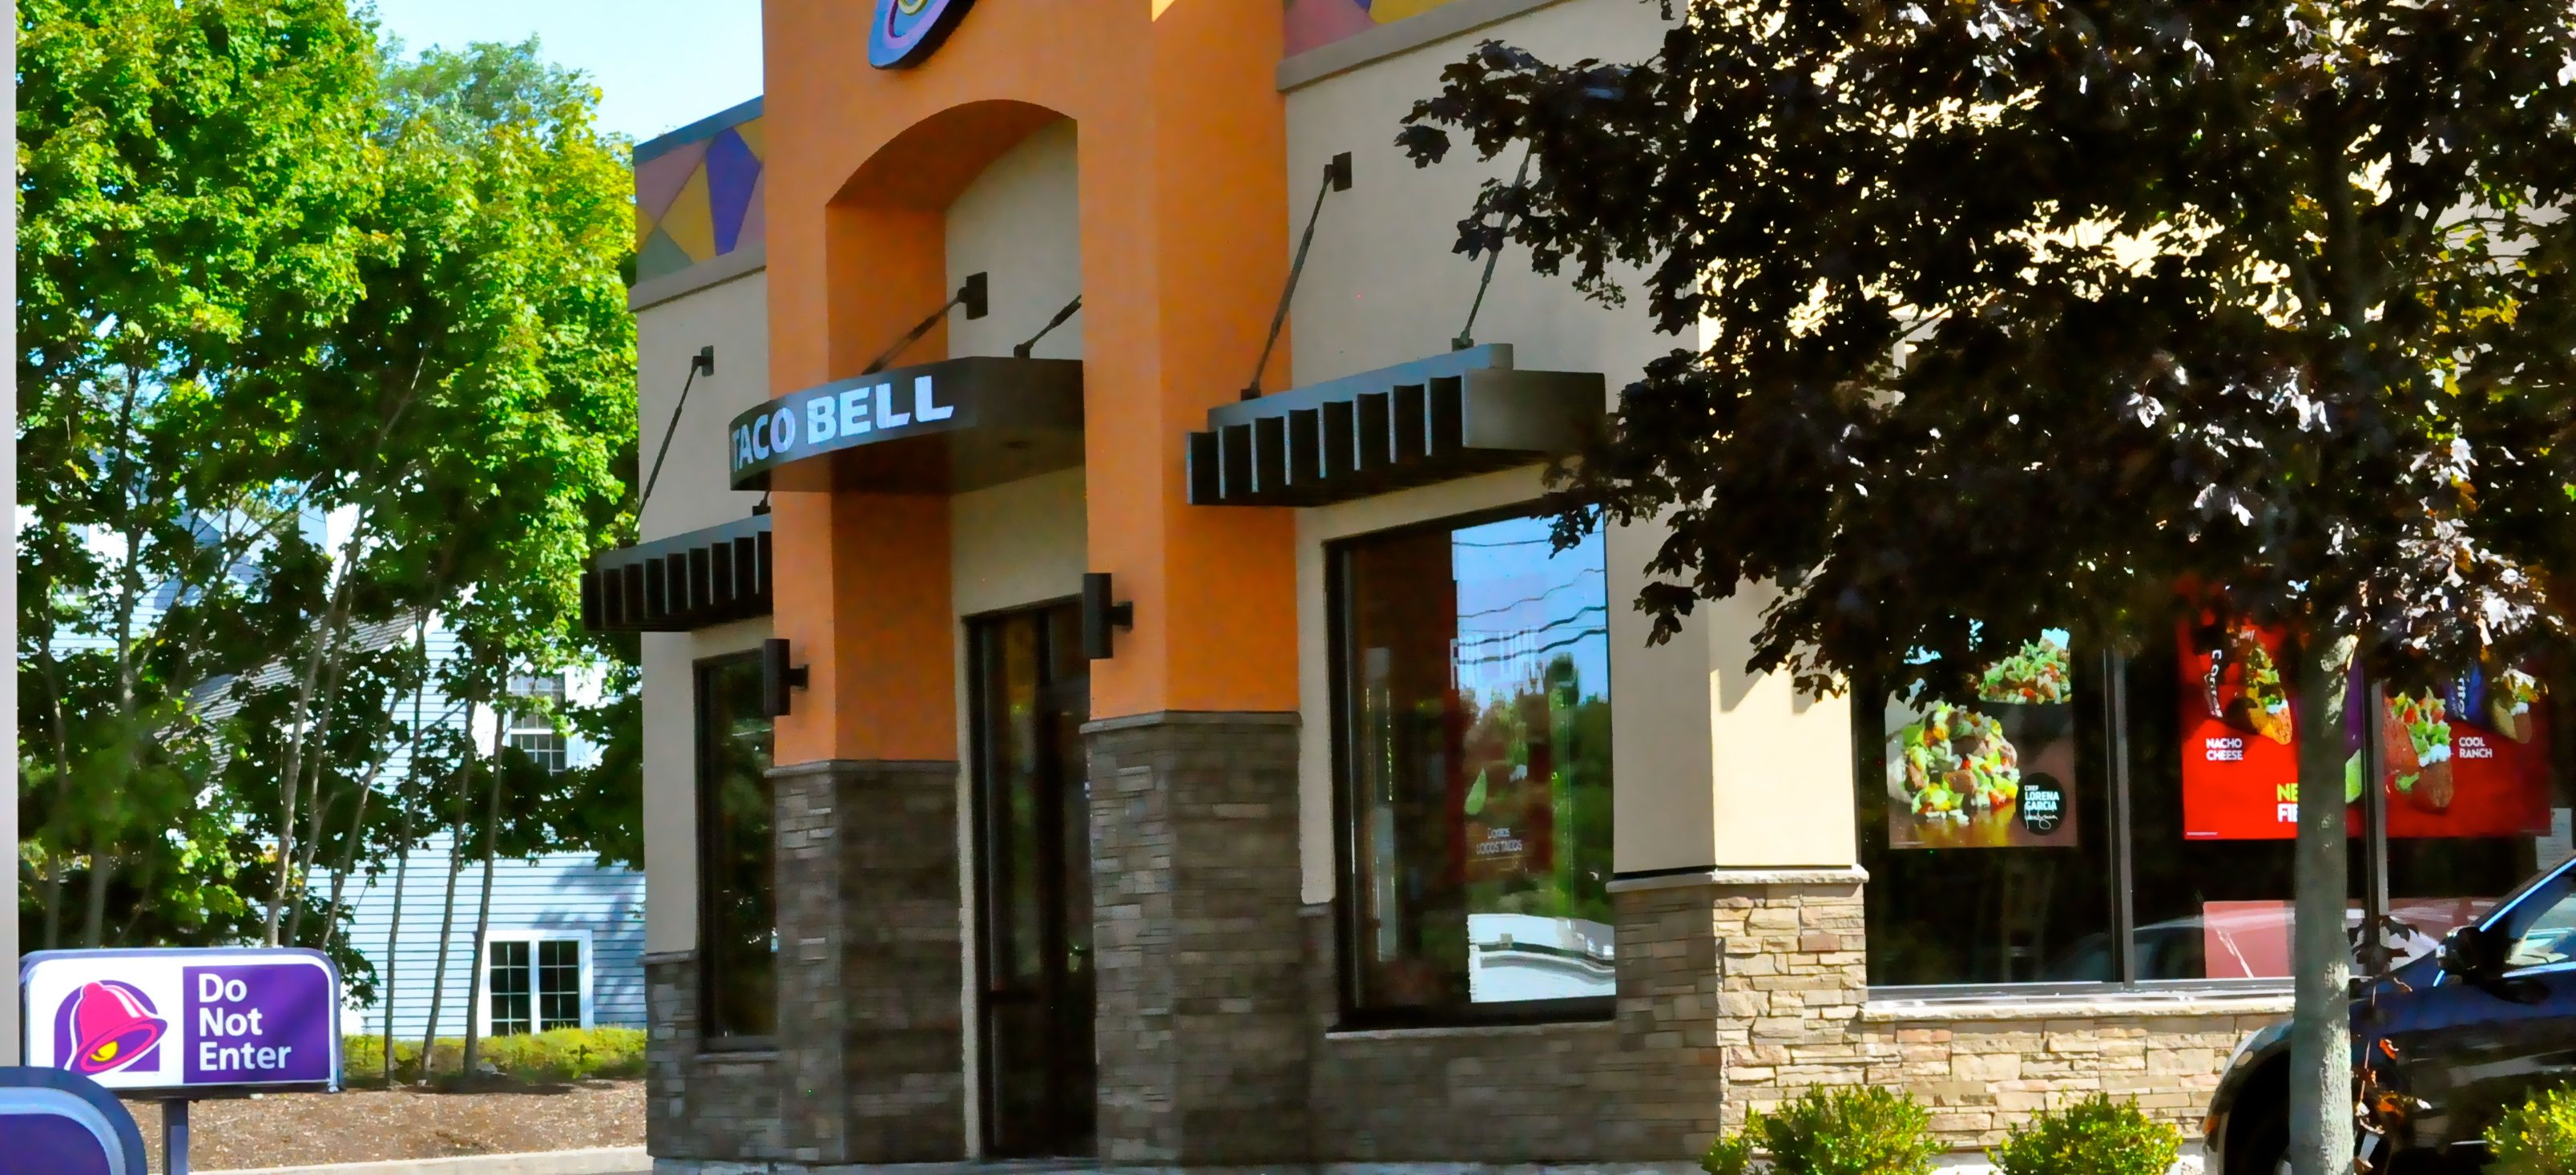 Taco Bell Jobs Norwell, MA Job, Taco bell, House styles